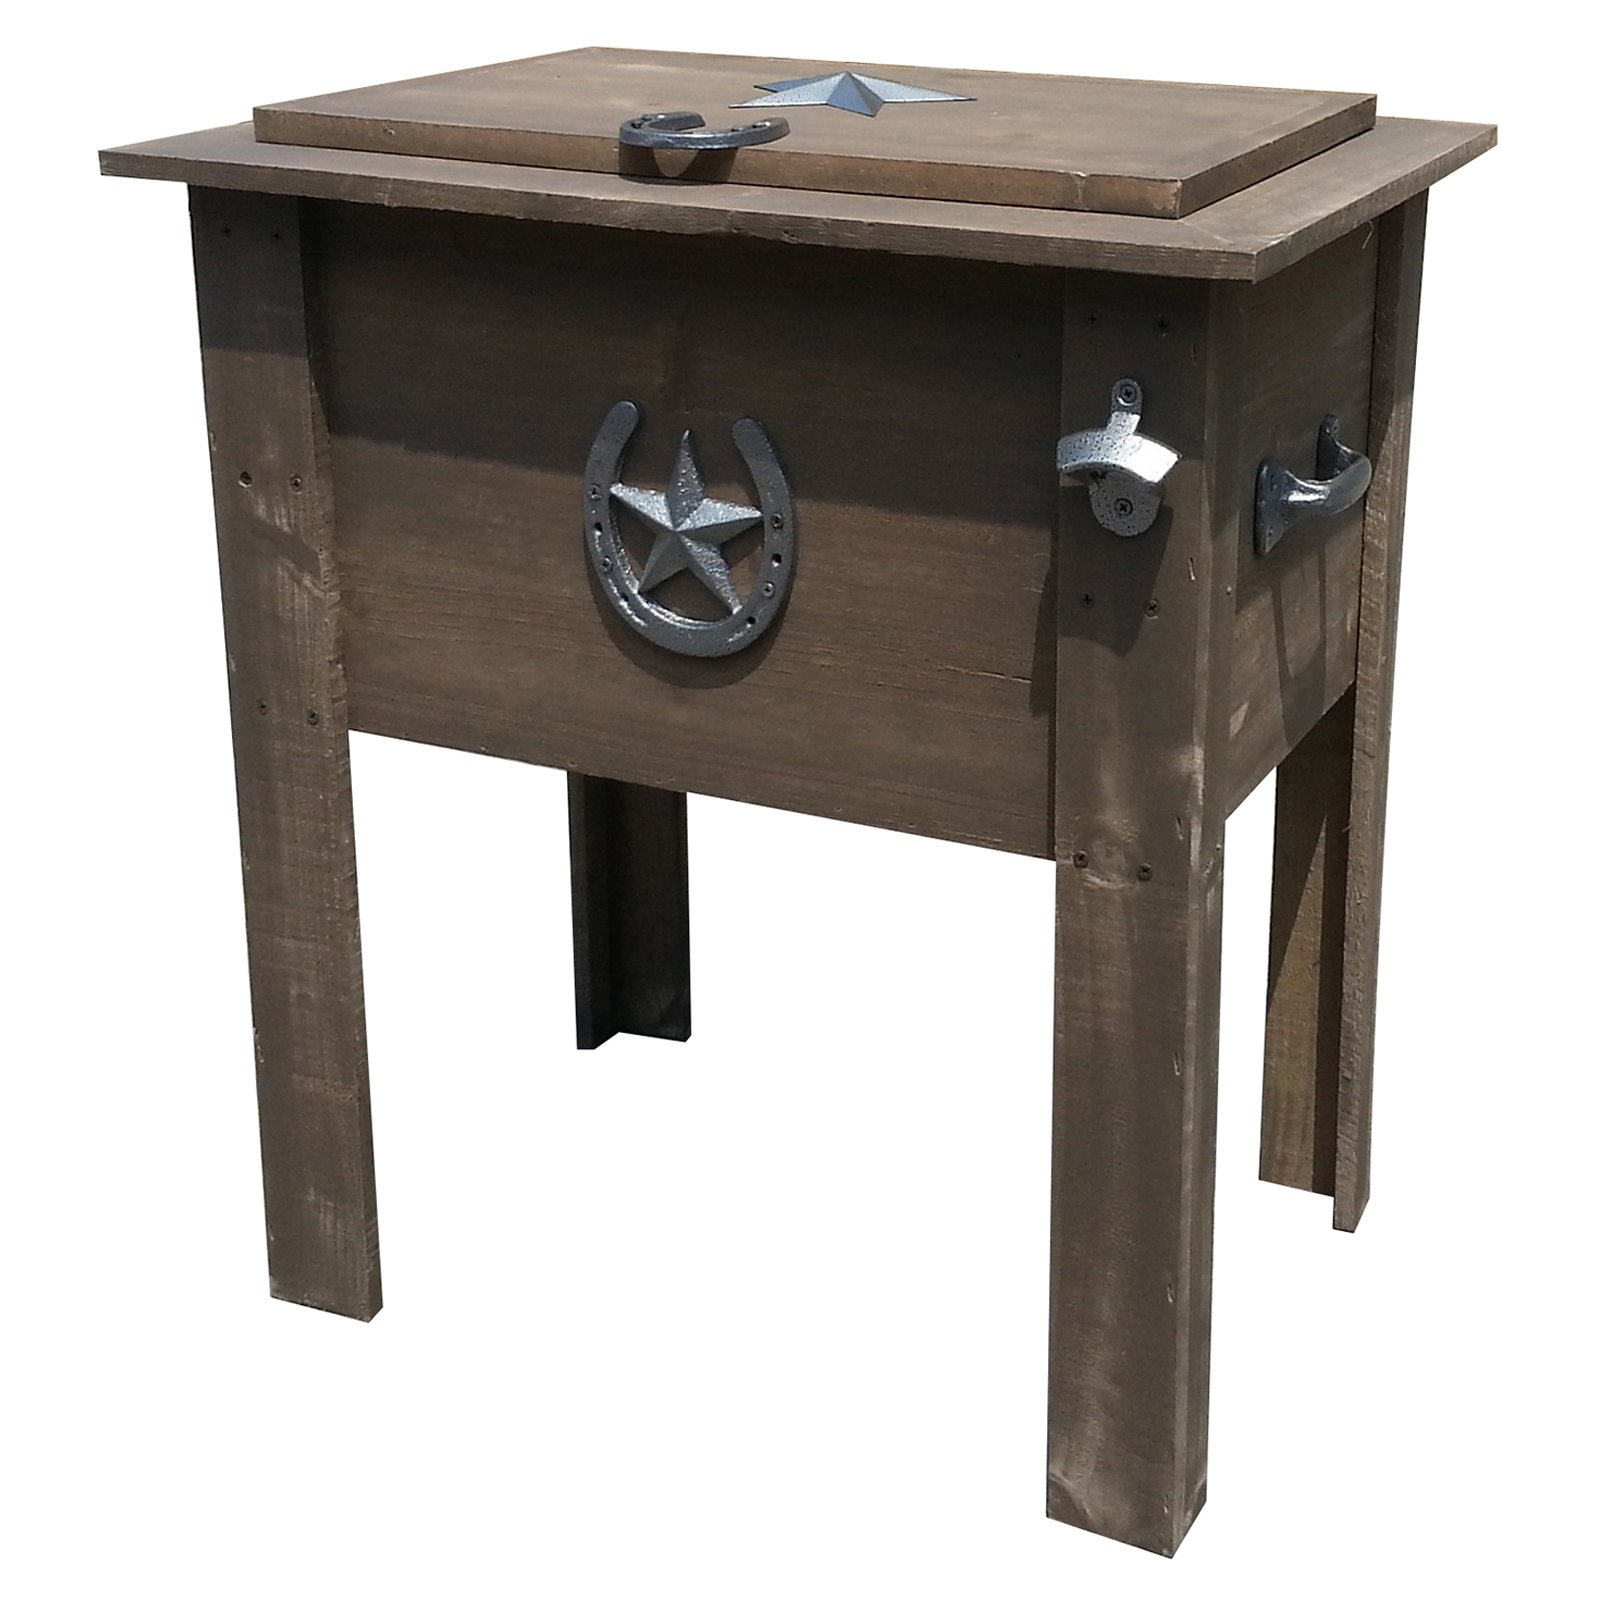 Leigh Country 54 Qt. Texas Star Country Cooler